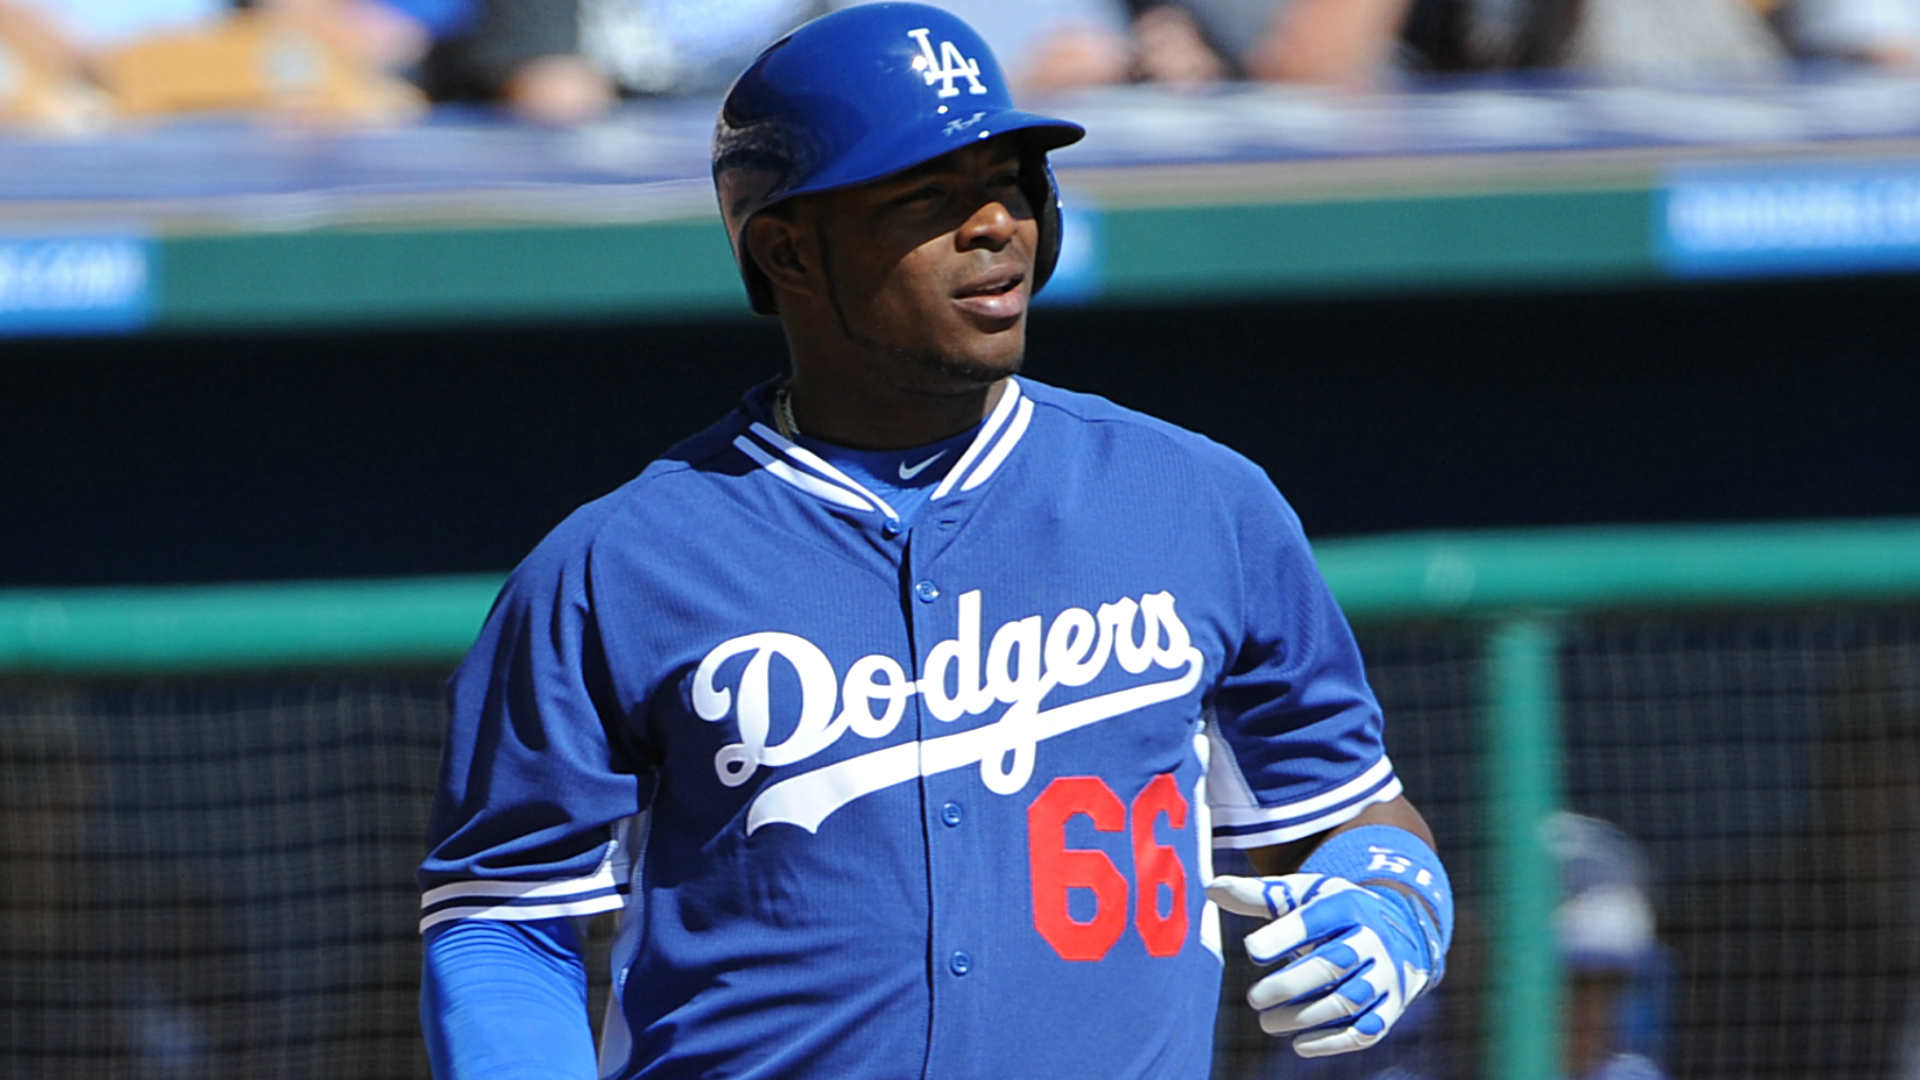 Yasiel Puig injury update: Dodgers place OF on DL